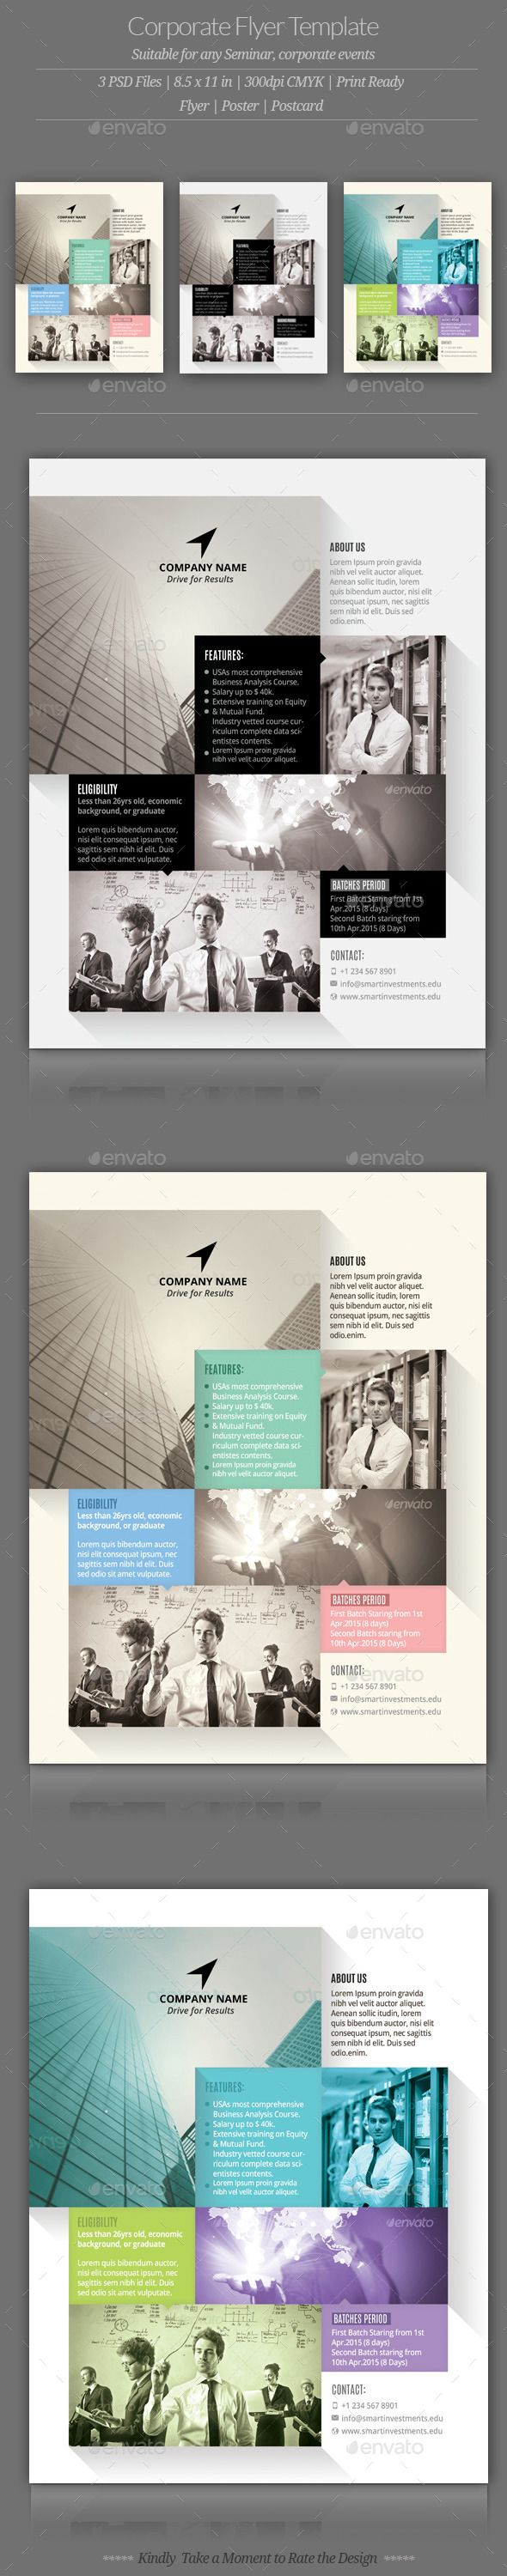 corporate flyer templates technology marketing and advertising corporate flyer templates cs3 8 5x11 advertisement advertising business clean